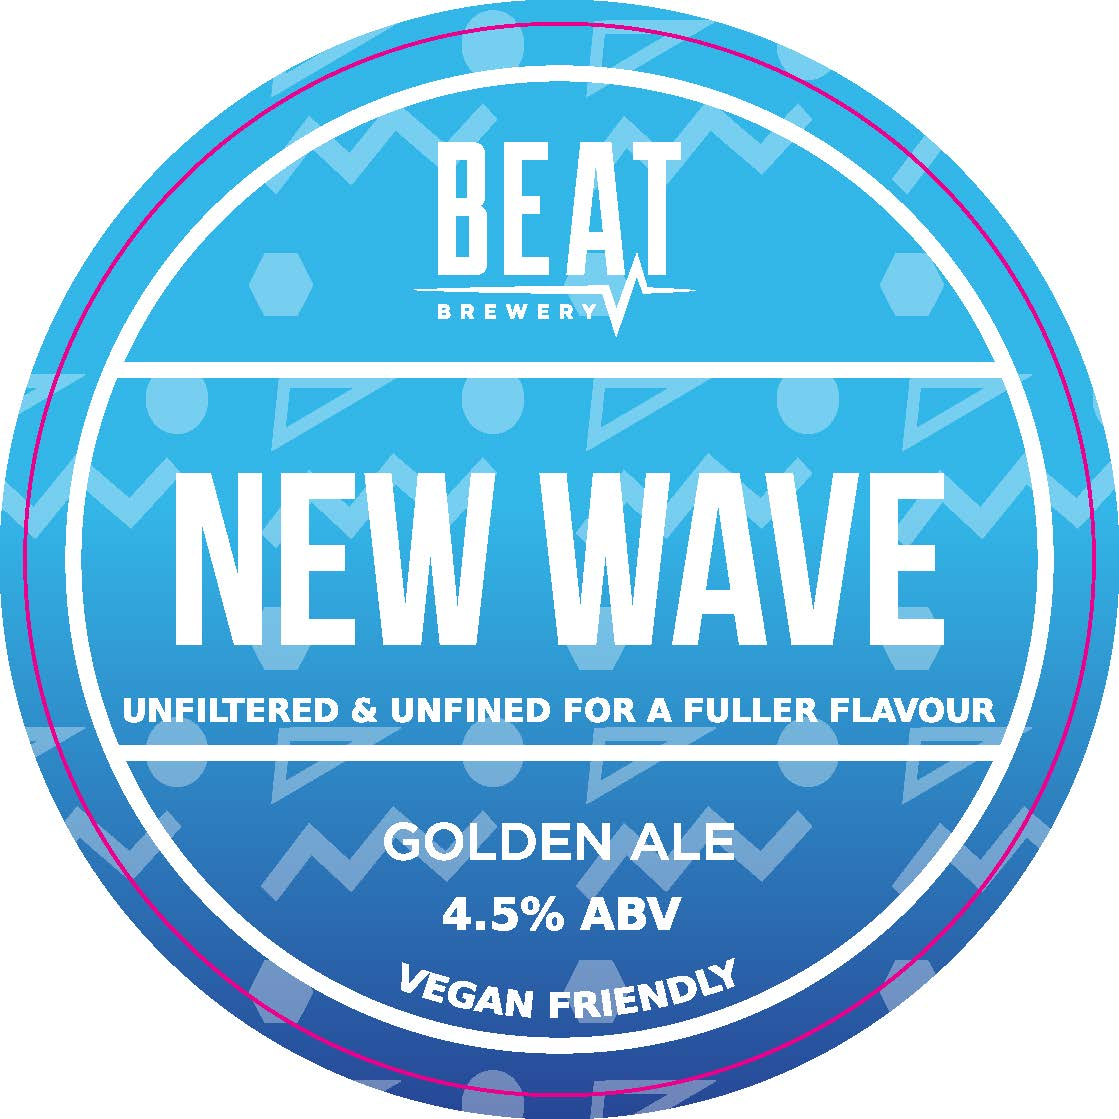 Beat Ales New Wave Unfined 9 Gallons Golden  4.5%